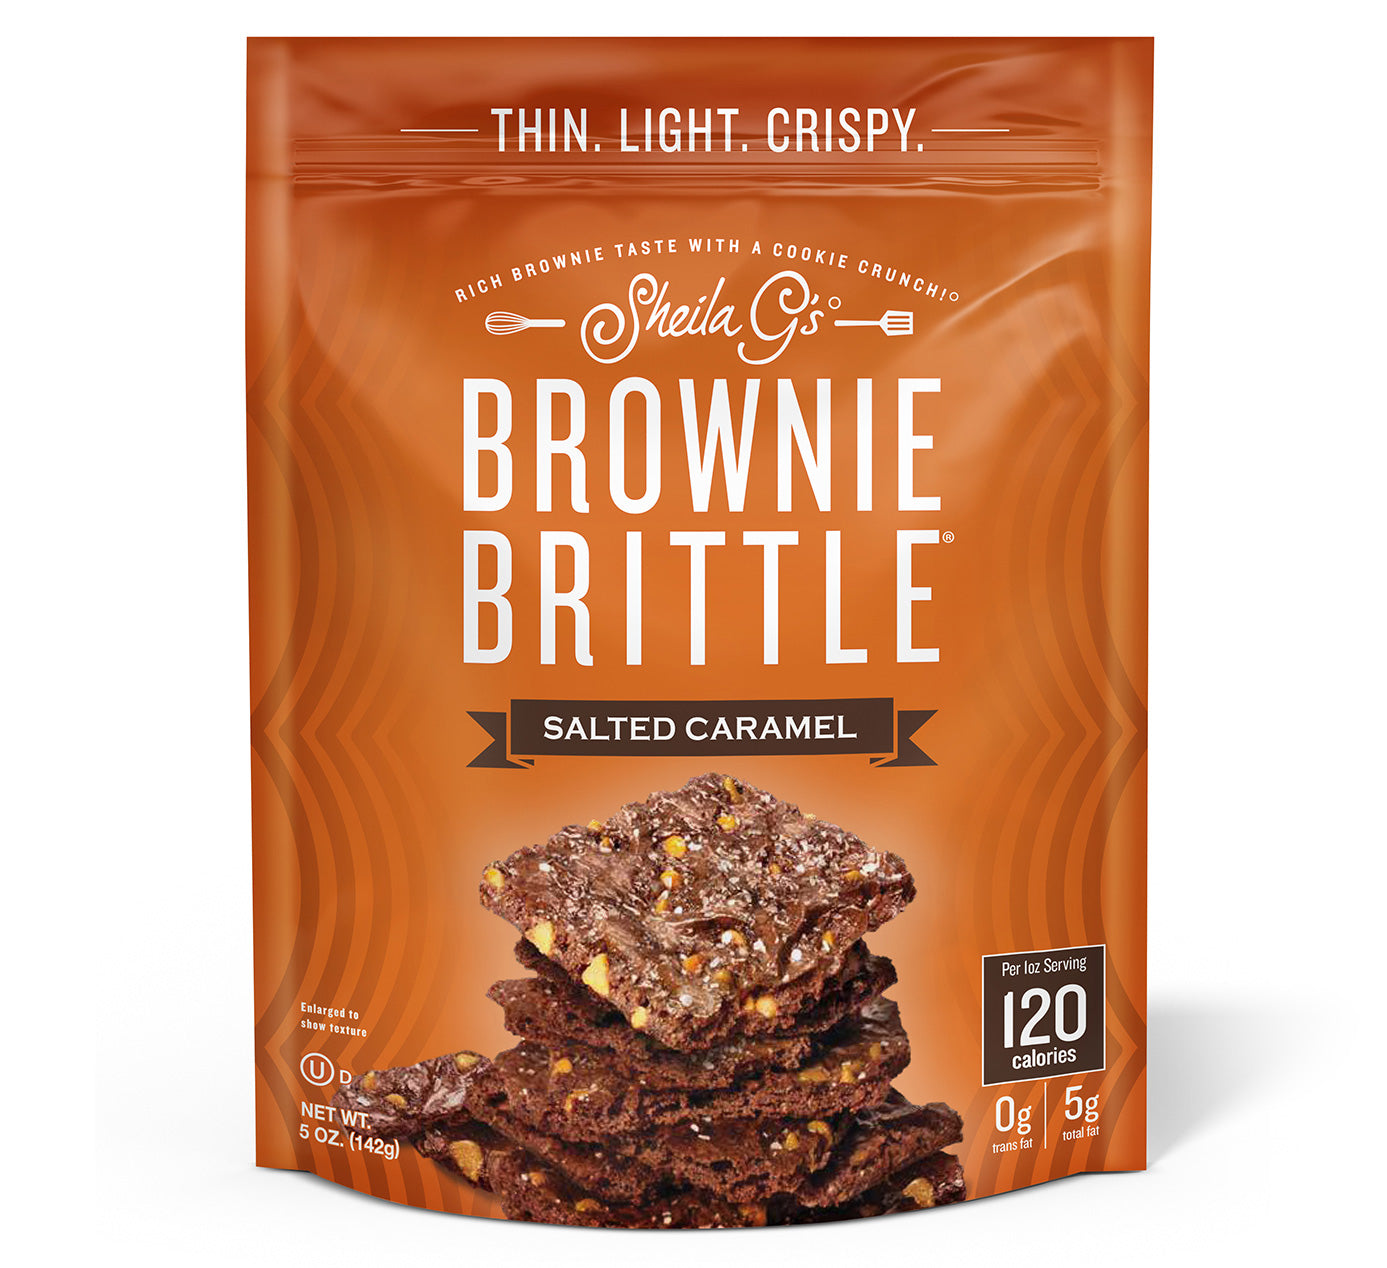 Brownie Brittle Salted Caramel